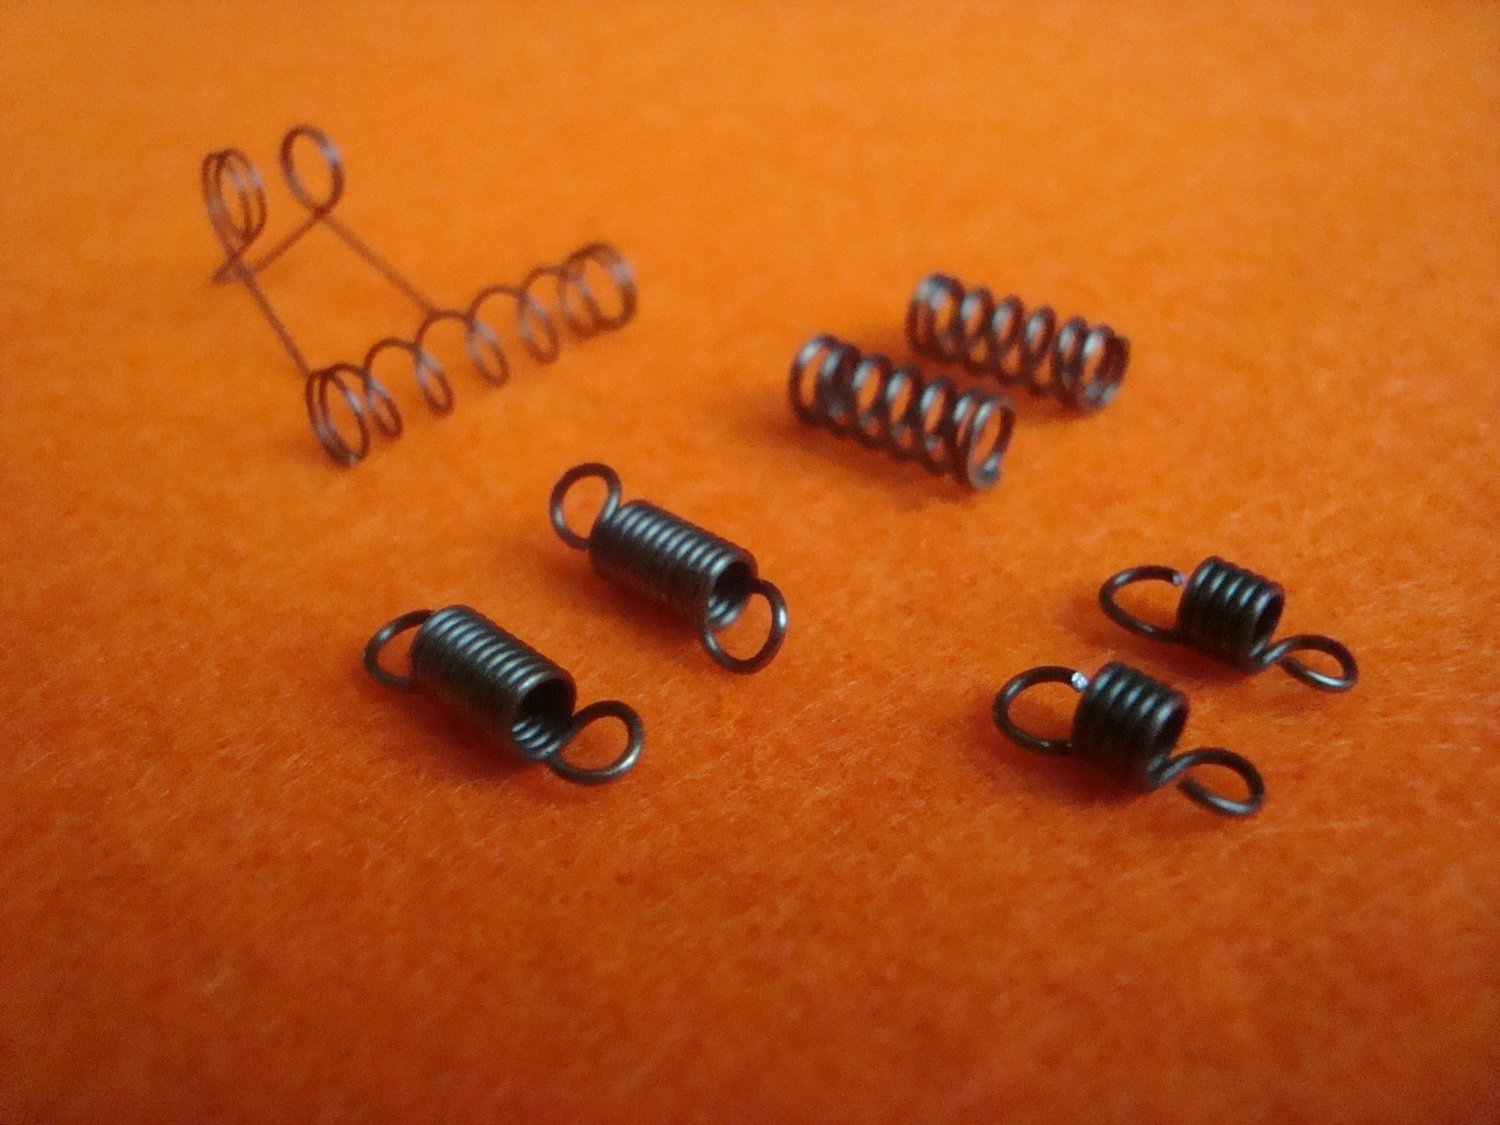 Spring parts MP-46M, IZH-46, mp-46 in repair kit for tuning spare details, upgrade set made to order